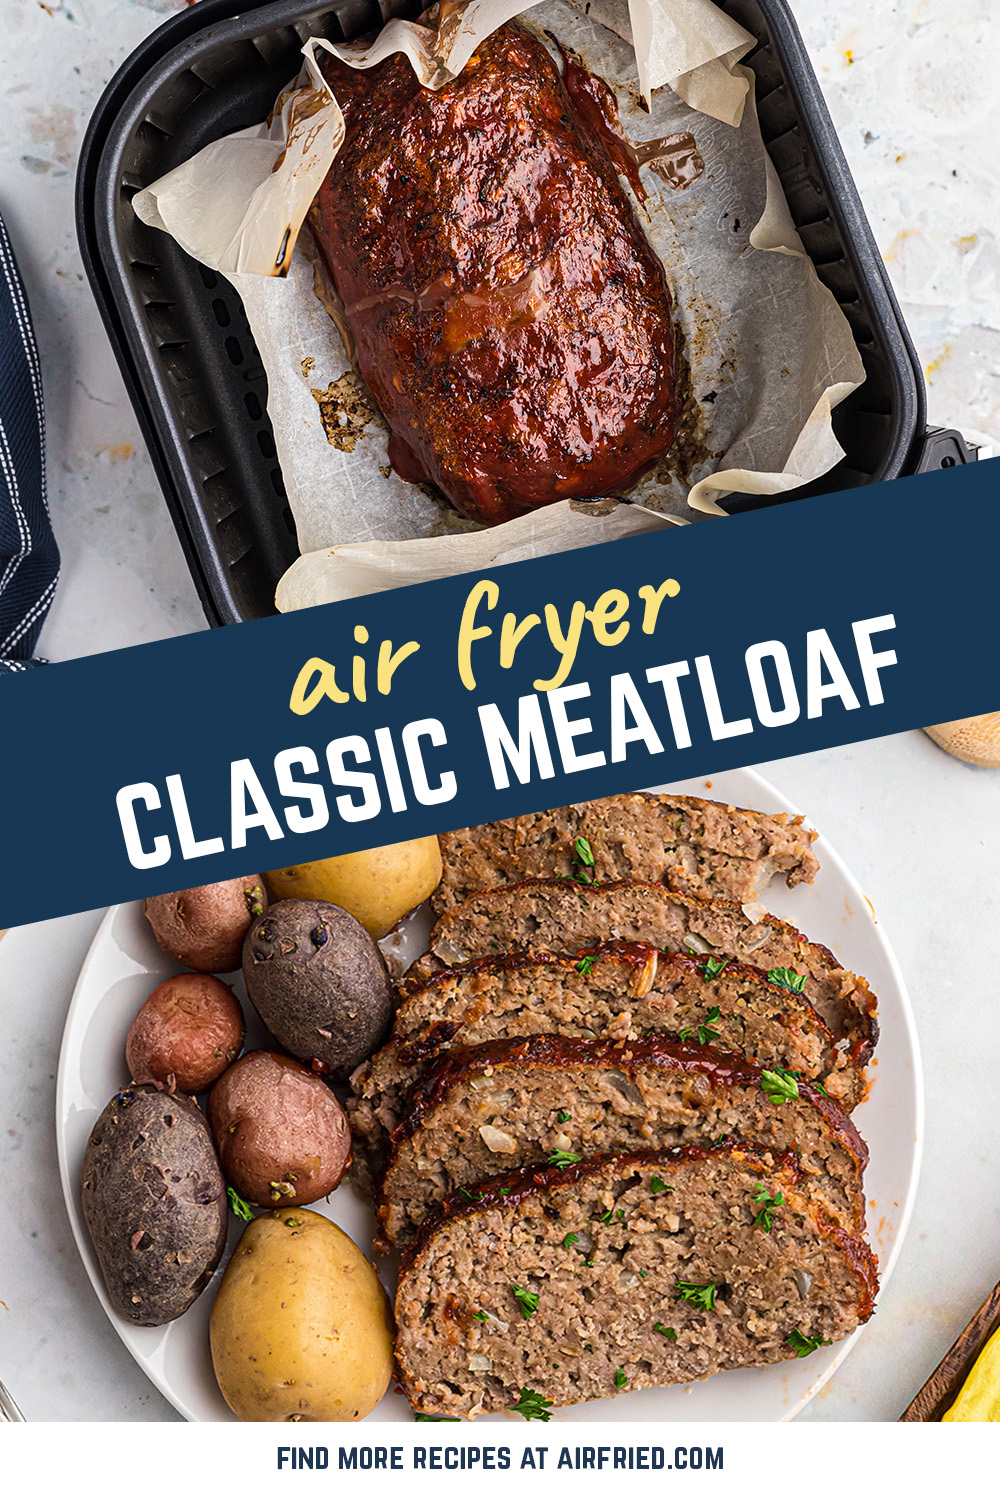 This meatloaf is cooked perfectly and topped with a classic glaze! #recipes #airfryer #comfortfood